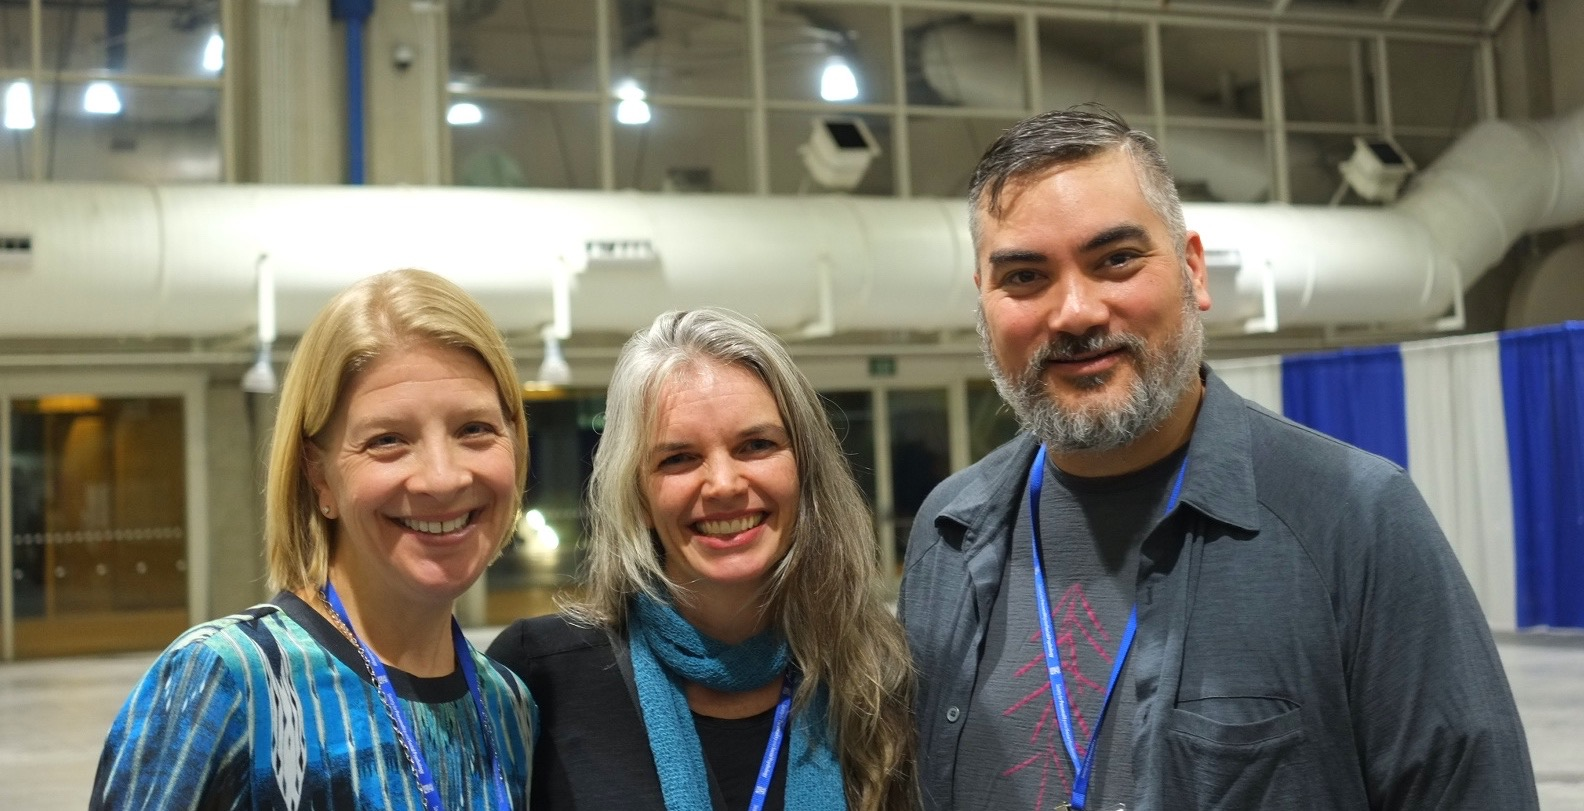 Drs. Lilgendahl, McLean, and Le at the 2016 SPSP conference in San Diego.